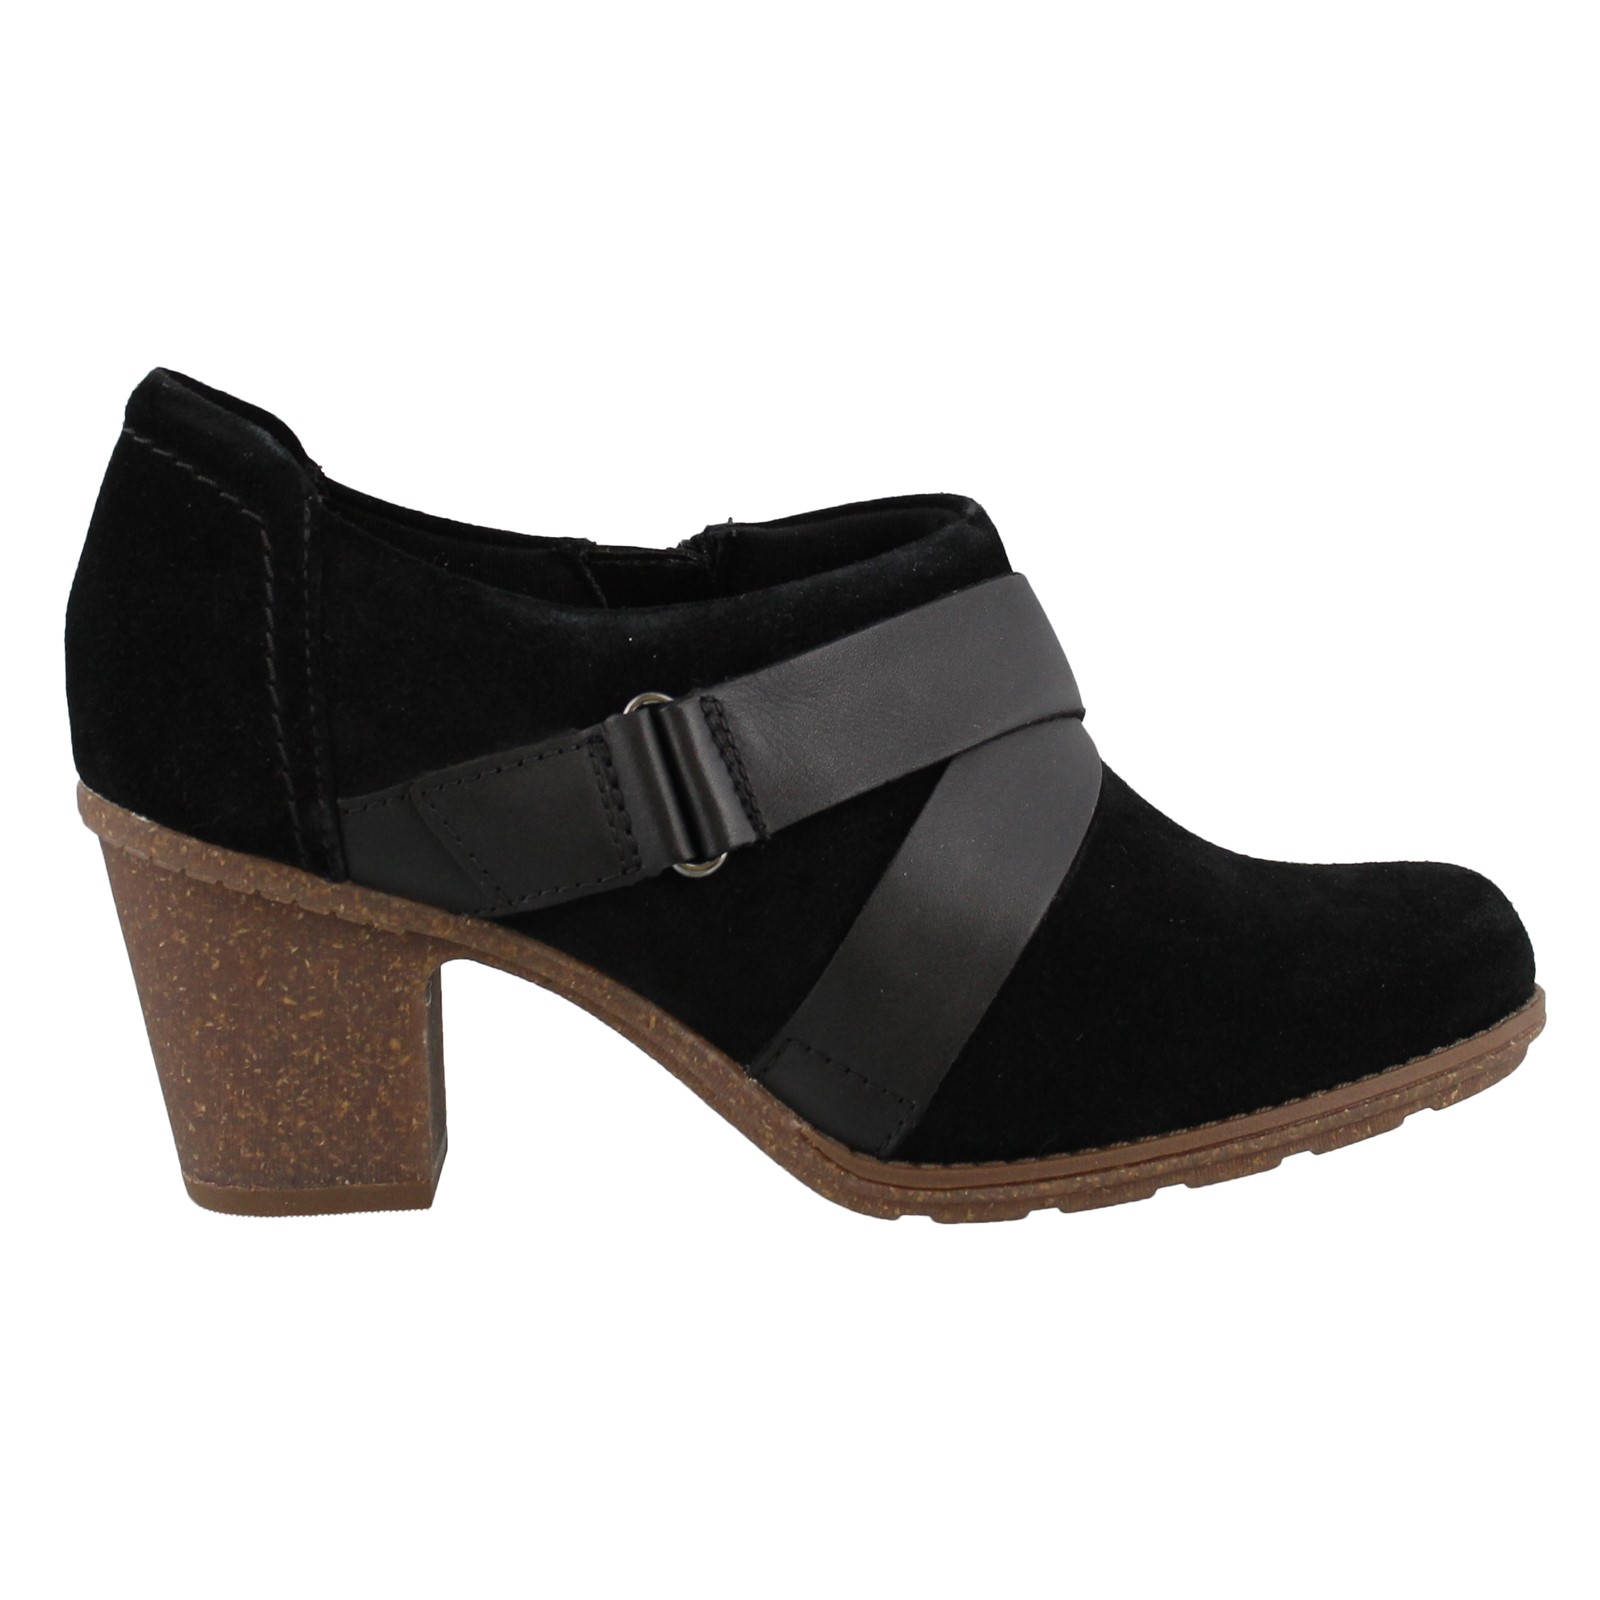 Women's Clarks, Sashlin Fiona Mid Heel Shooties